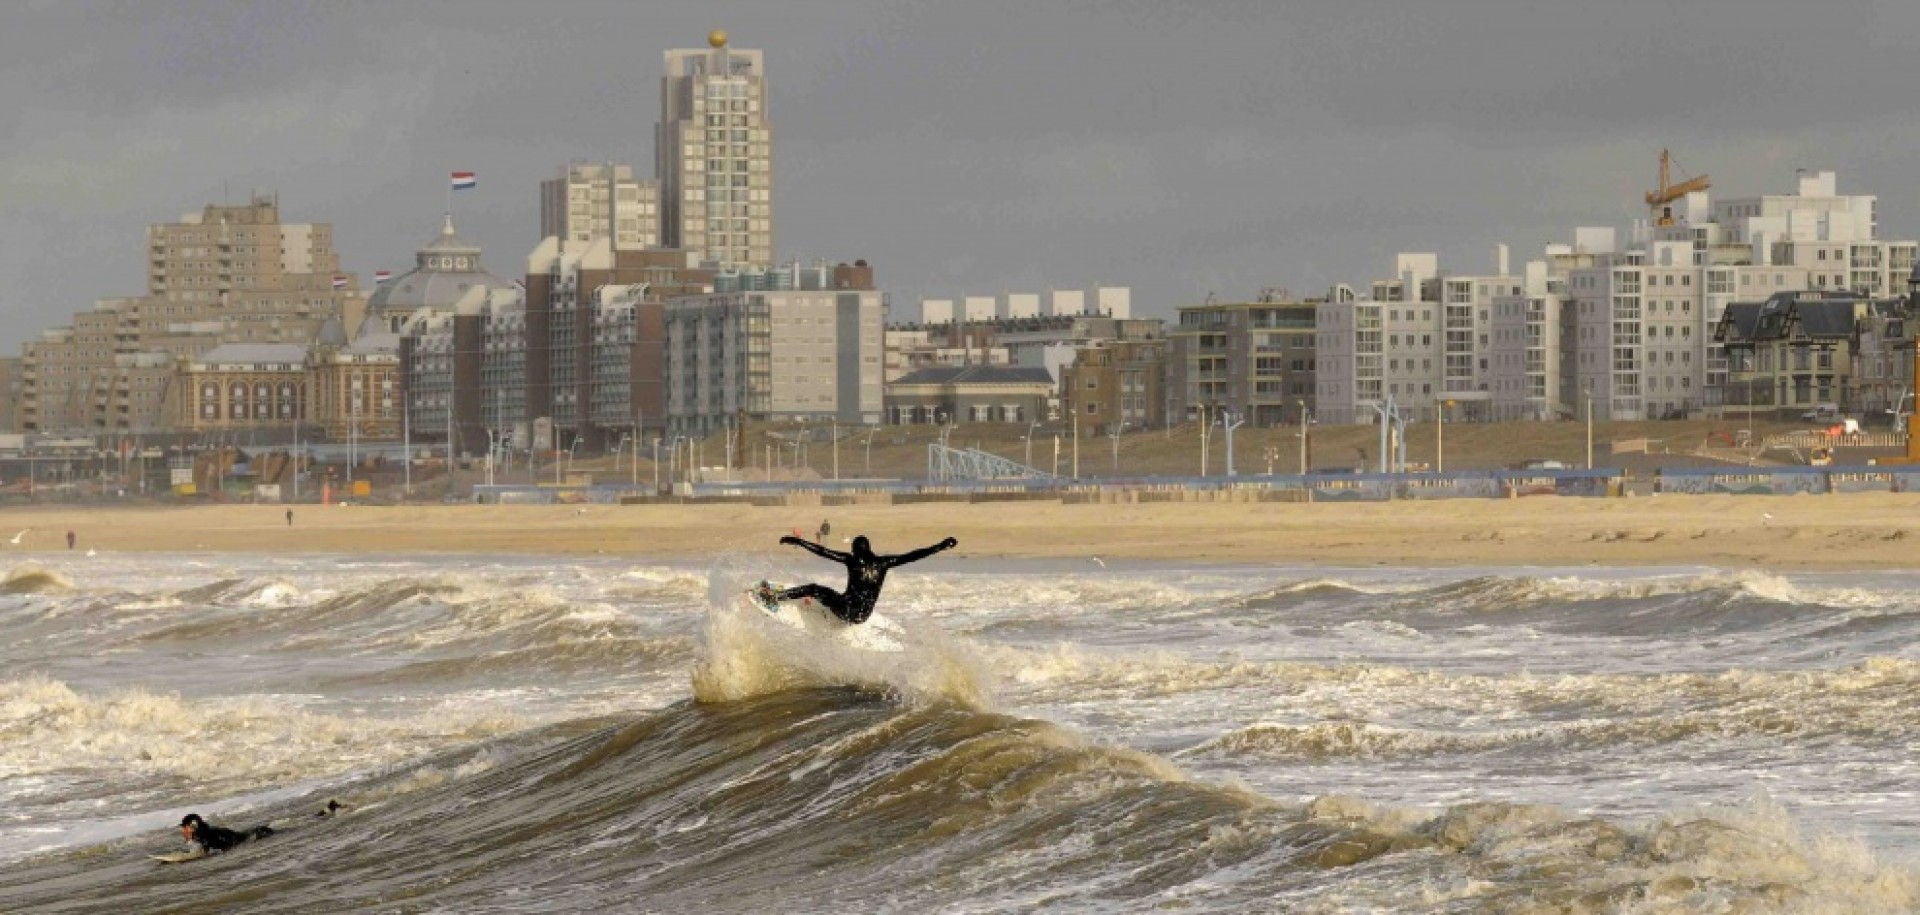 Leendert Prins's photo of Scheveningen Nord